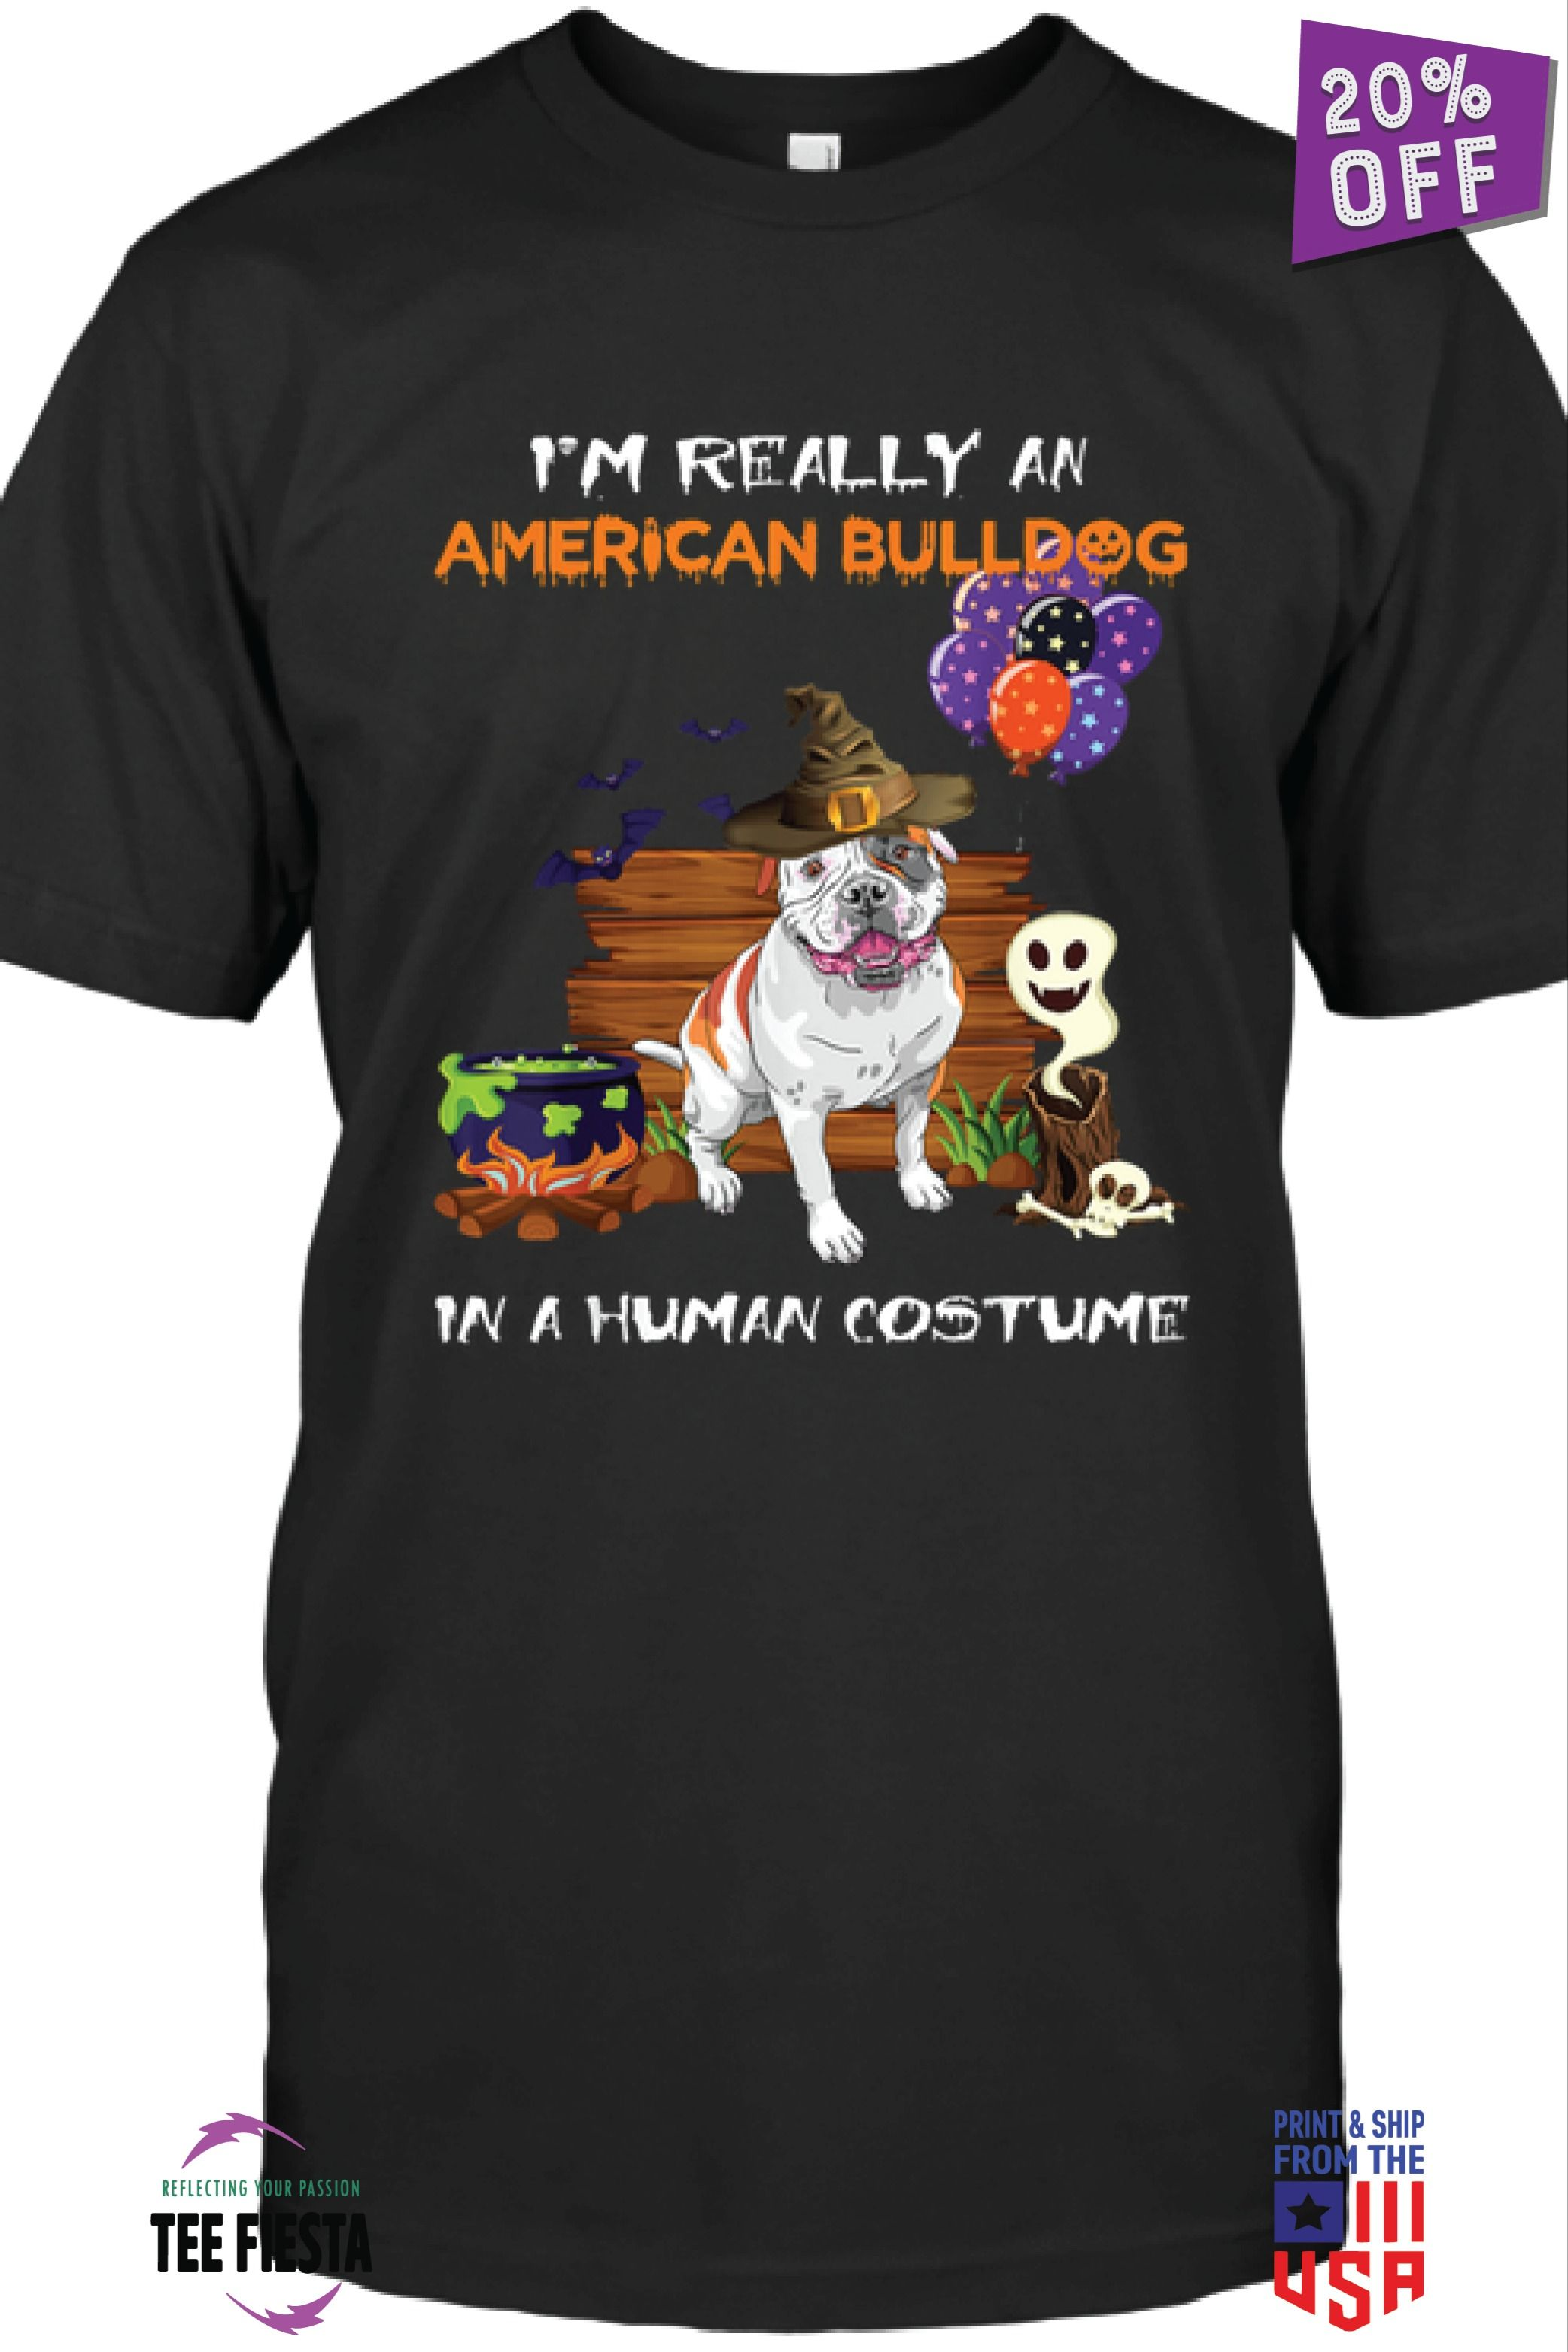 AMERICAN BULLDOG HALLOWEEN | FUNNY HALLOWEEN UNISEX SHIRTS | GET 20% OFF | LIMITED TIME OFFER #funnybulldog